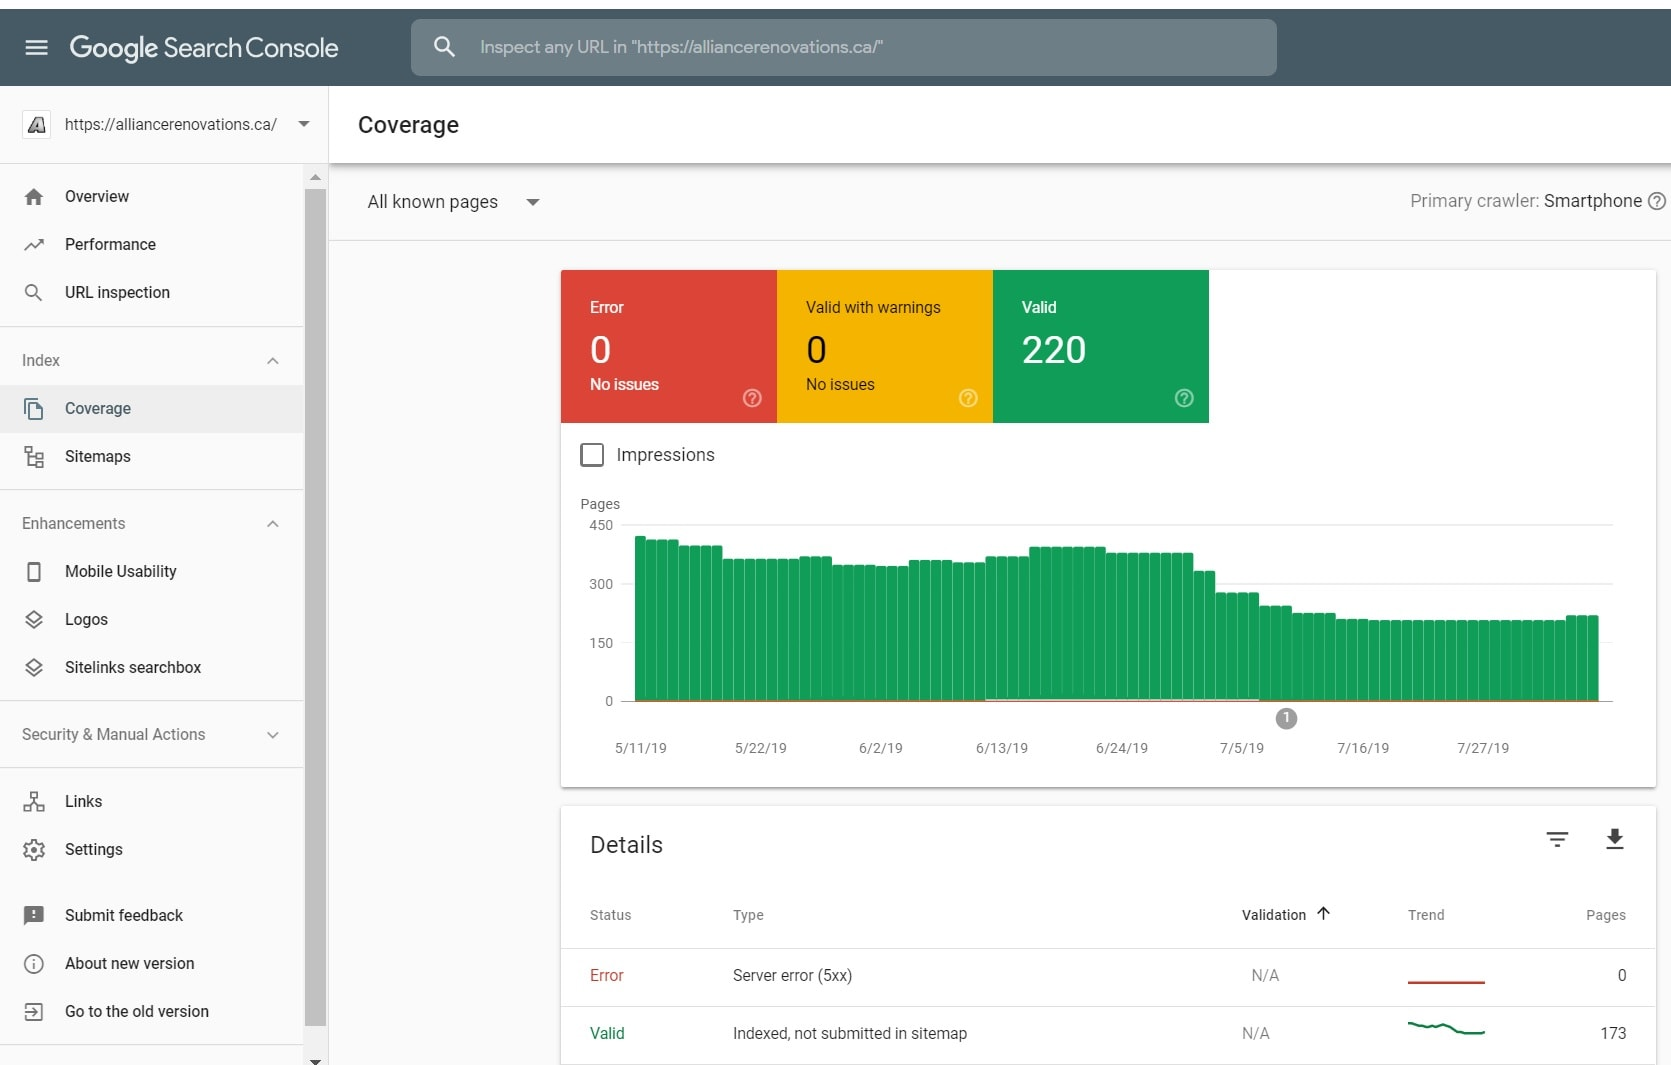 Google Search Console Errors, Warnings and Valid